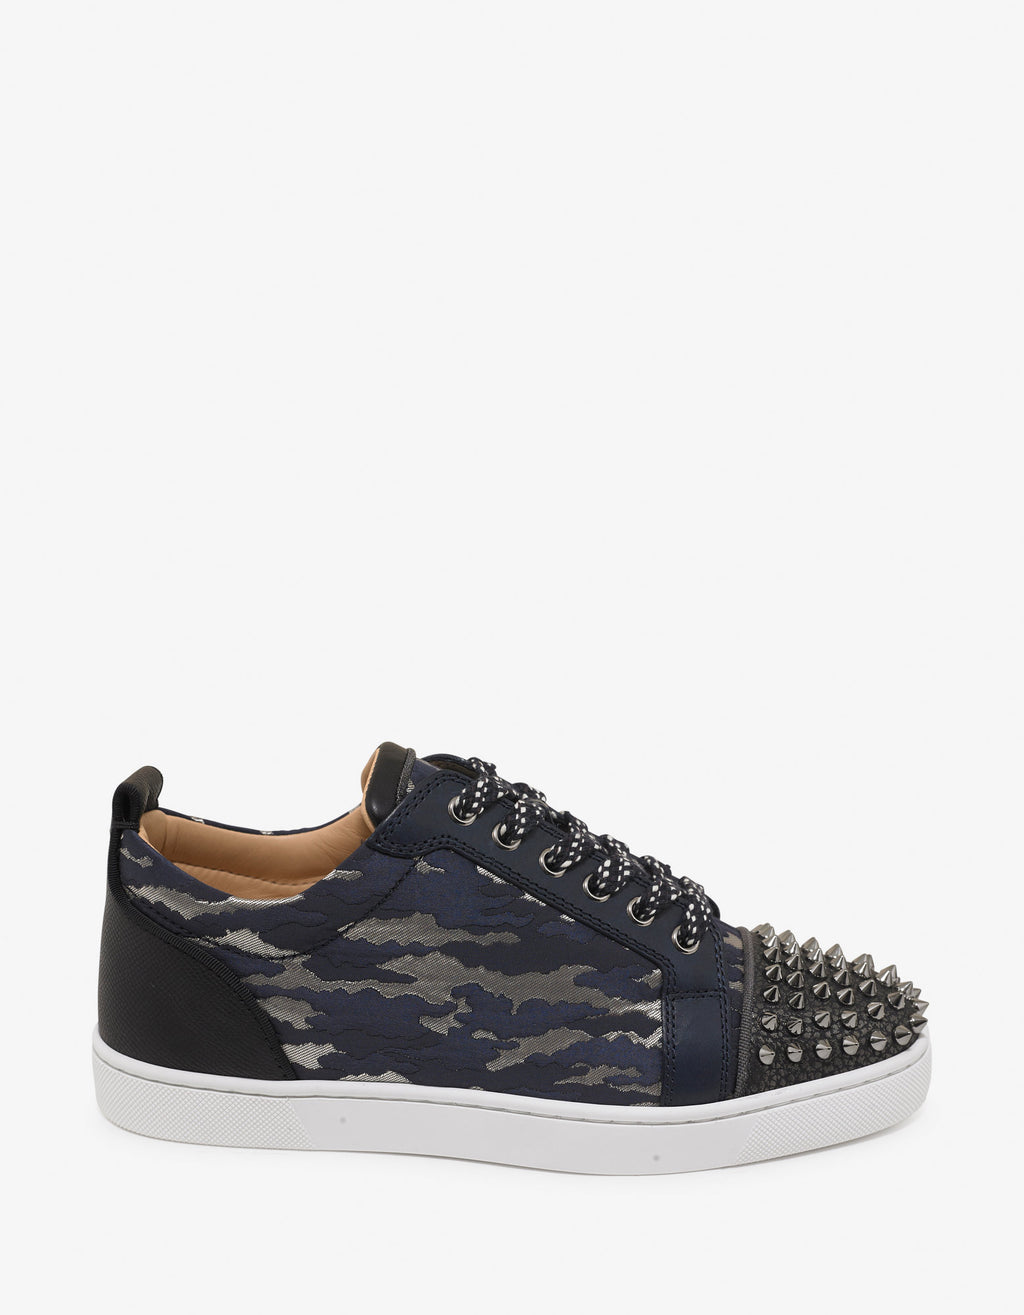 Louis Junior Spikes Orlato Jacquard Camouloubi Trainers